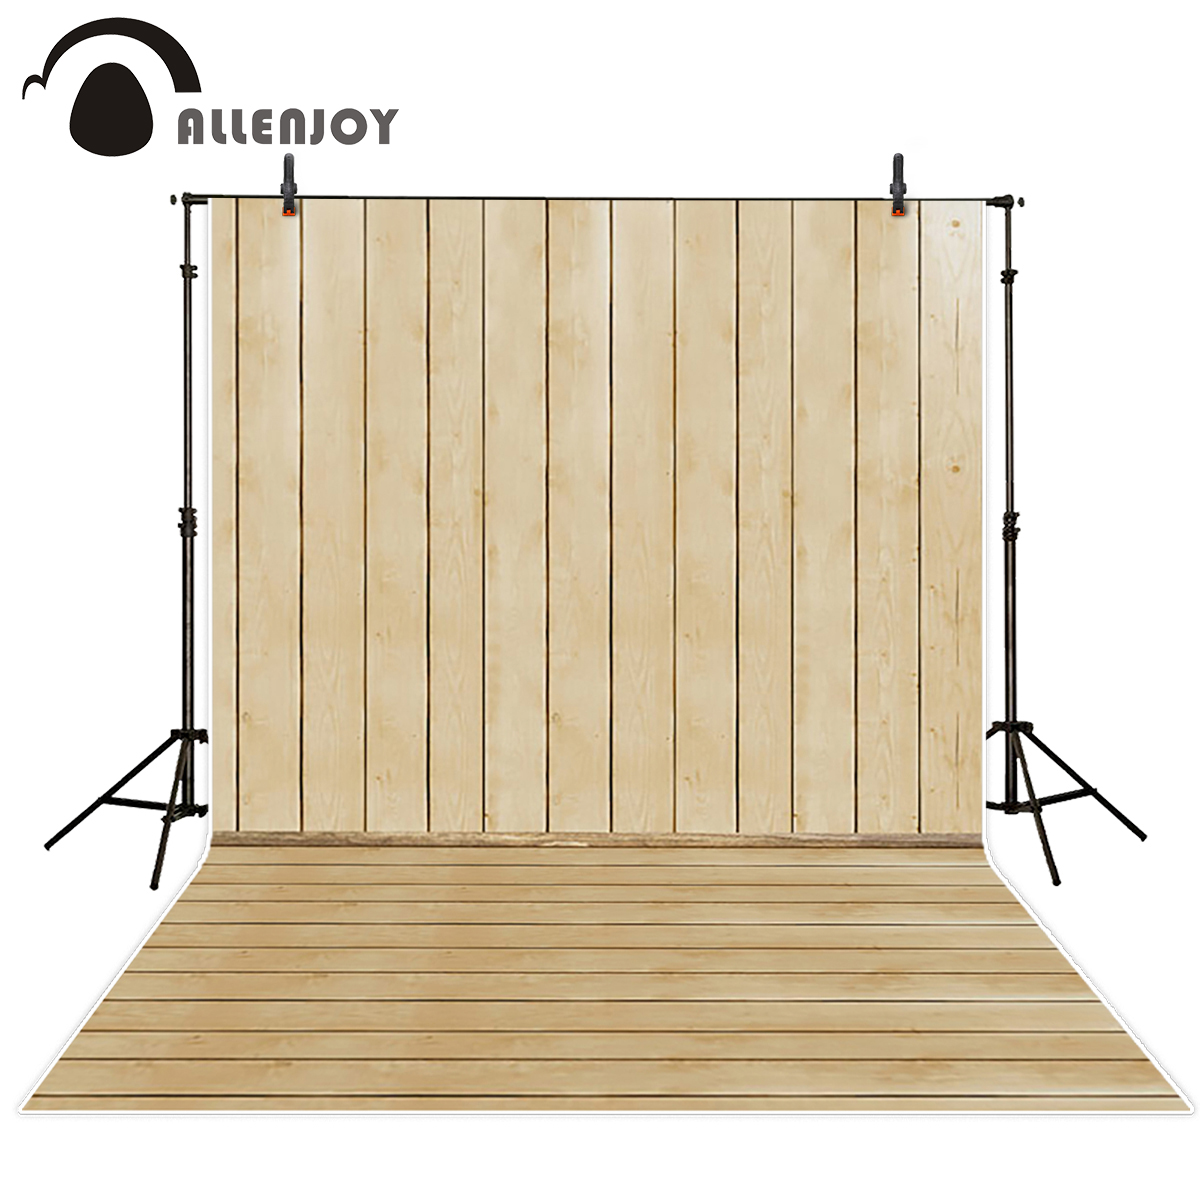 Allenjoy ivory wood wall floor photography backdrop vintage beige board newborn baby shower portrait background photo studio allenjoy photography backdrop brick wall wooden floor white baby shower children background photo studio photocall